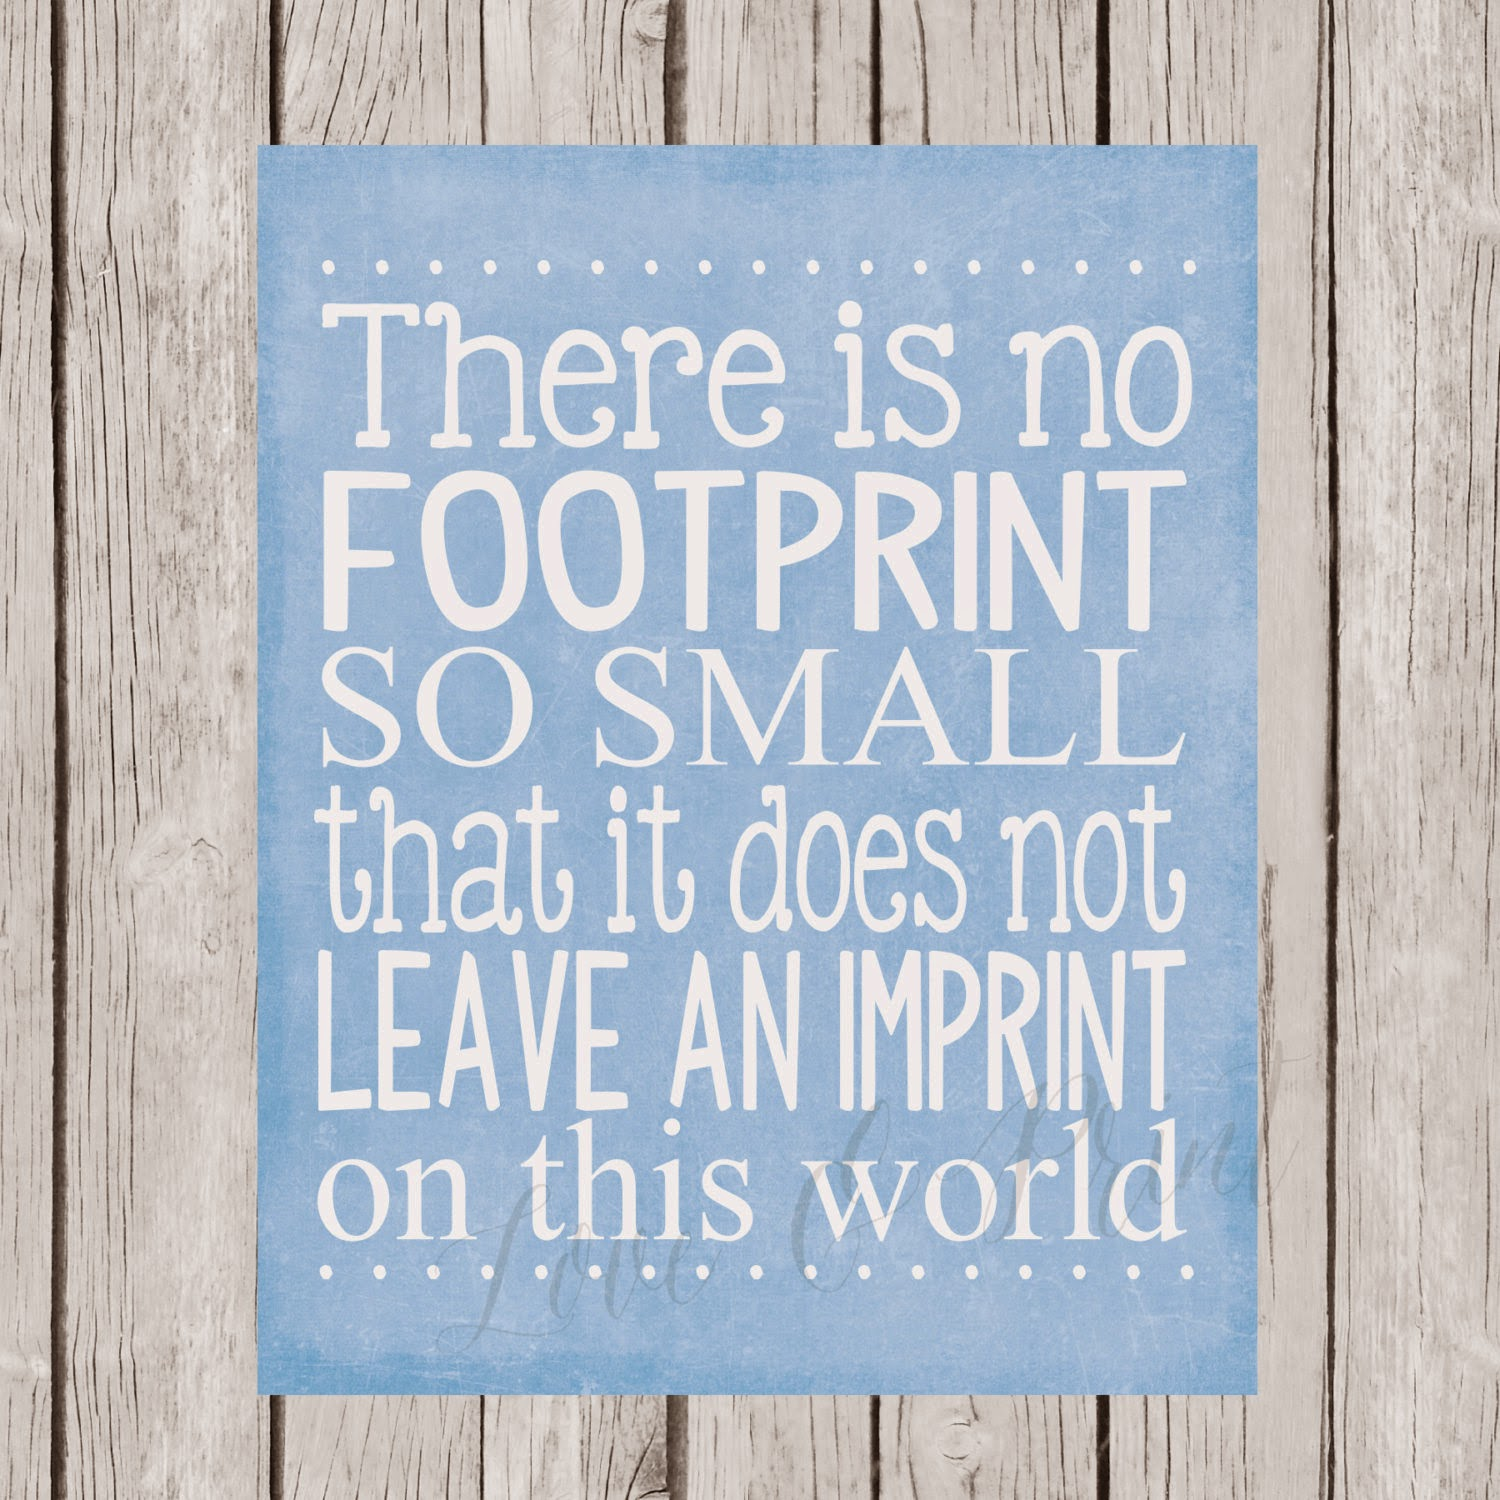 There is no footprint too small art print image